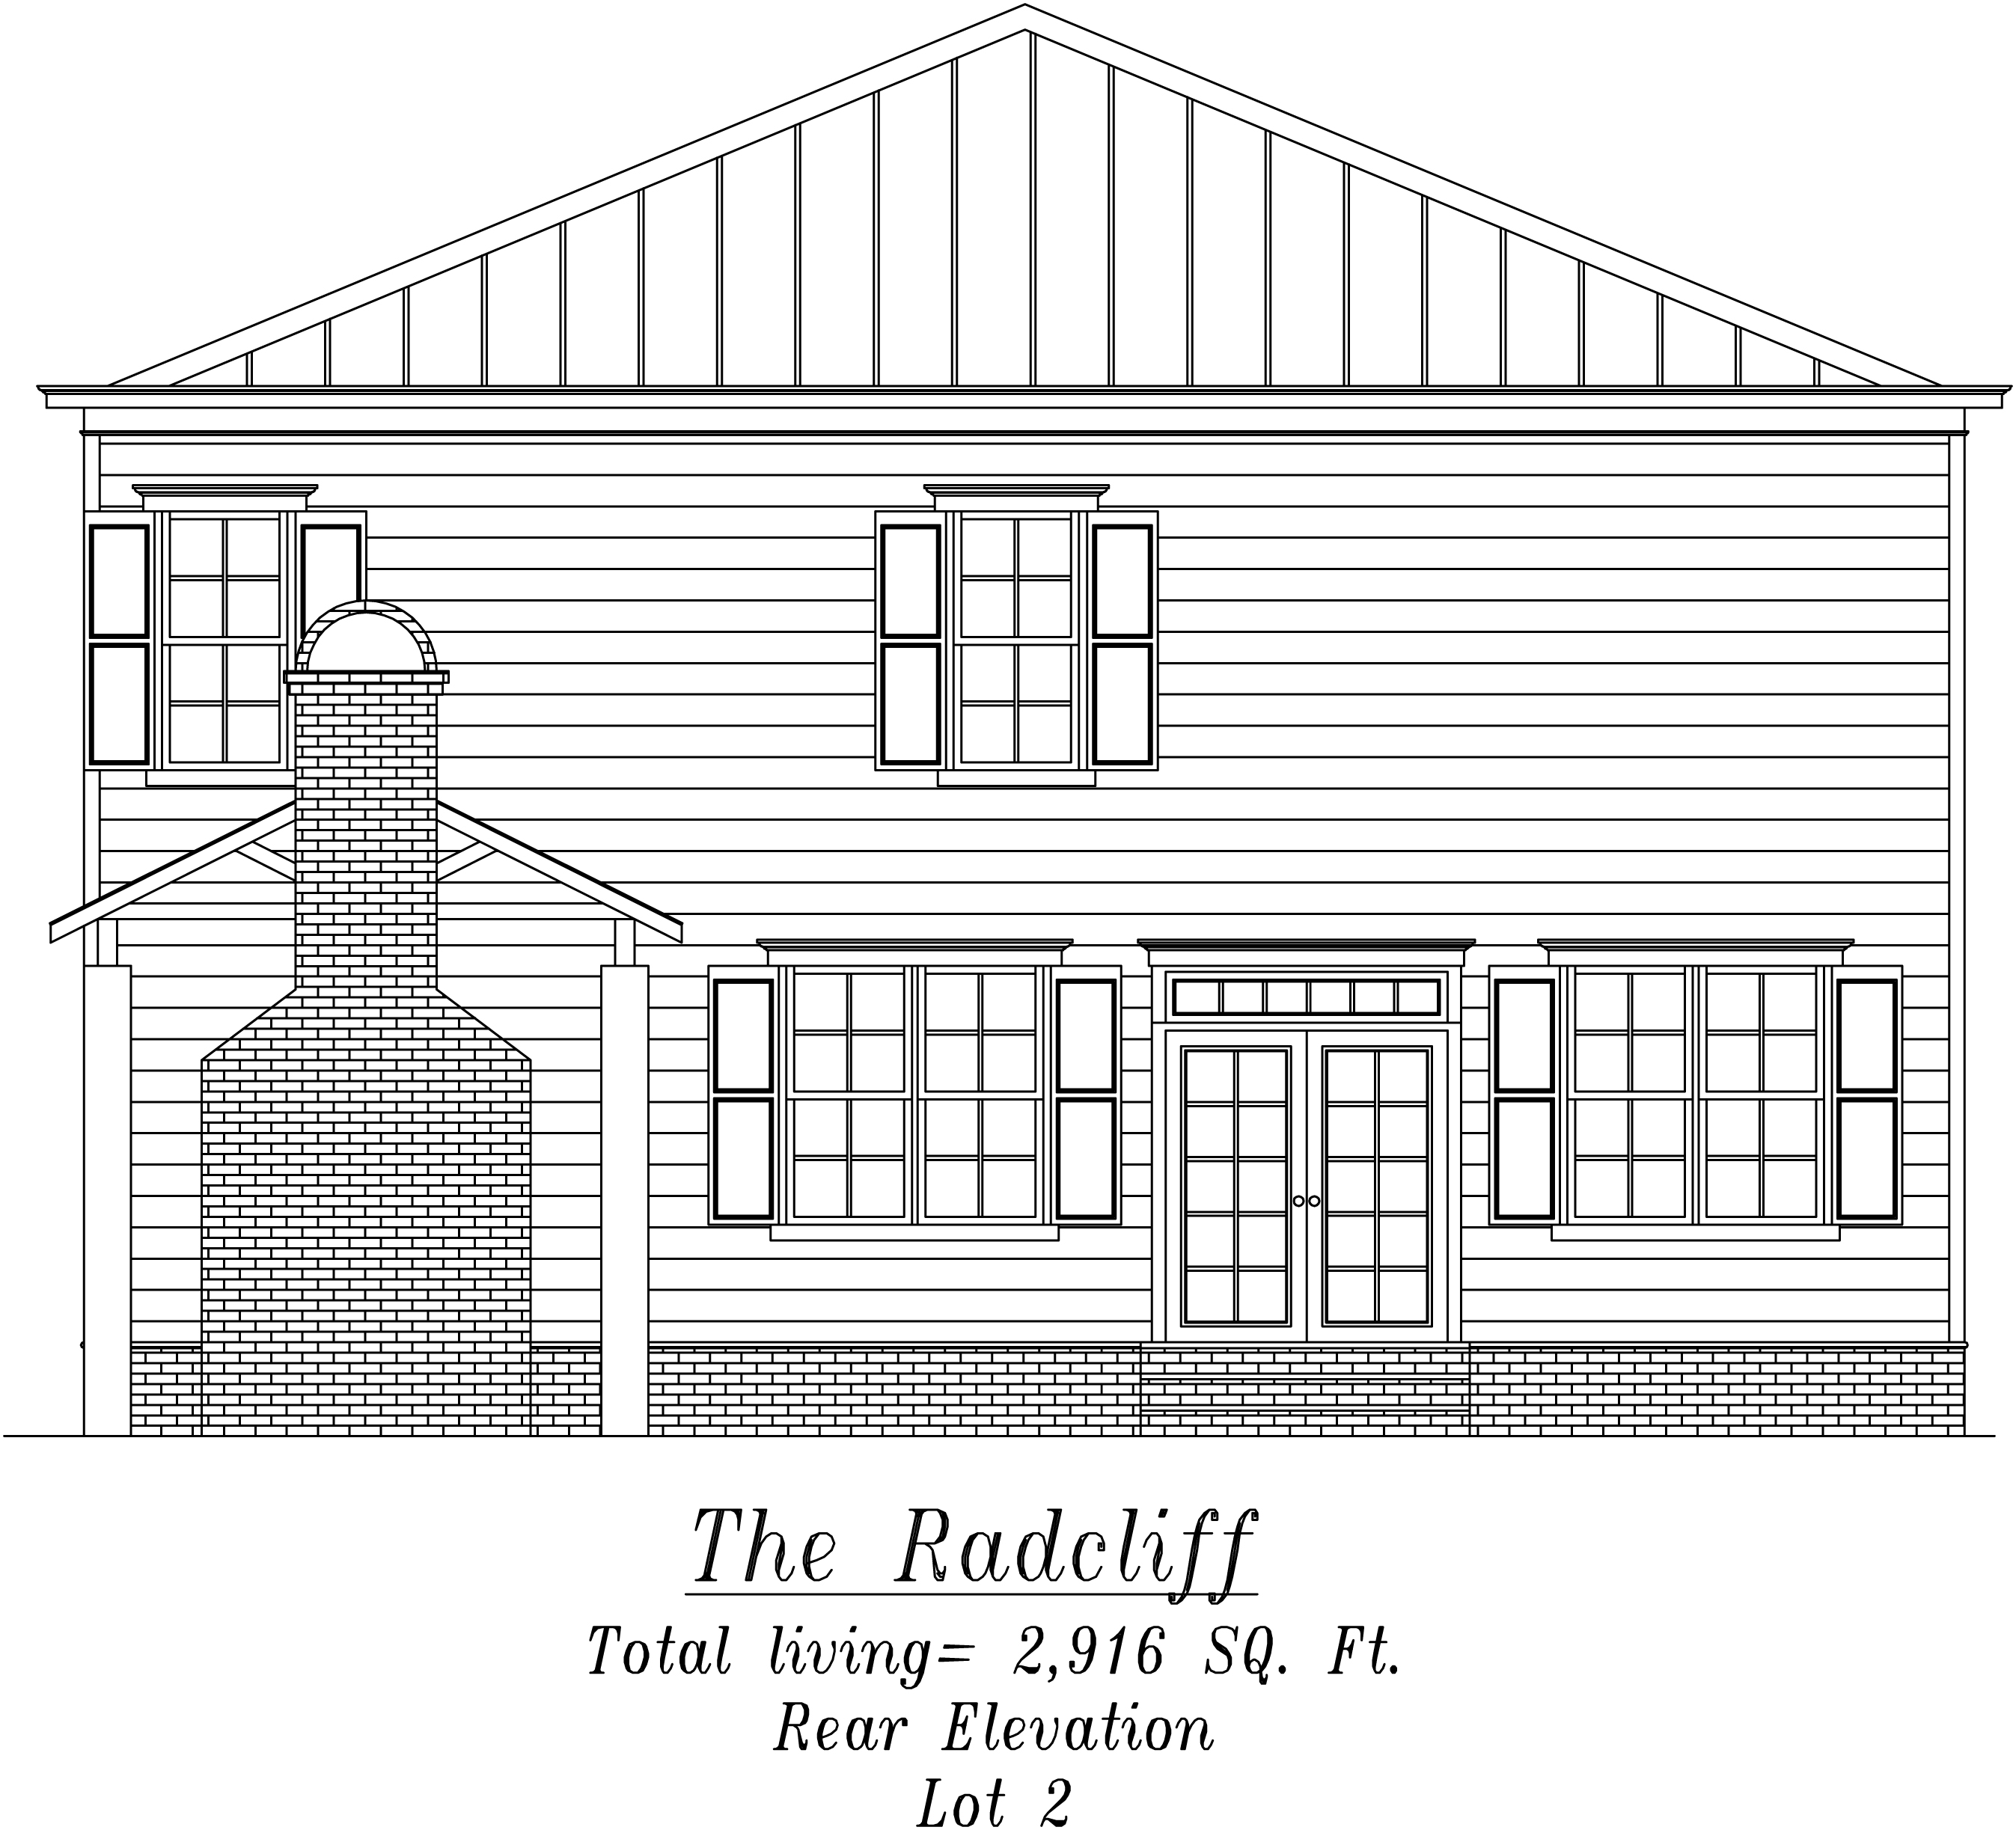 Radcliff Rear Elevation